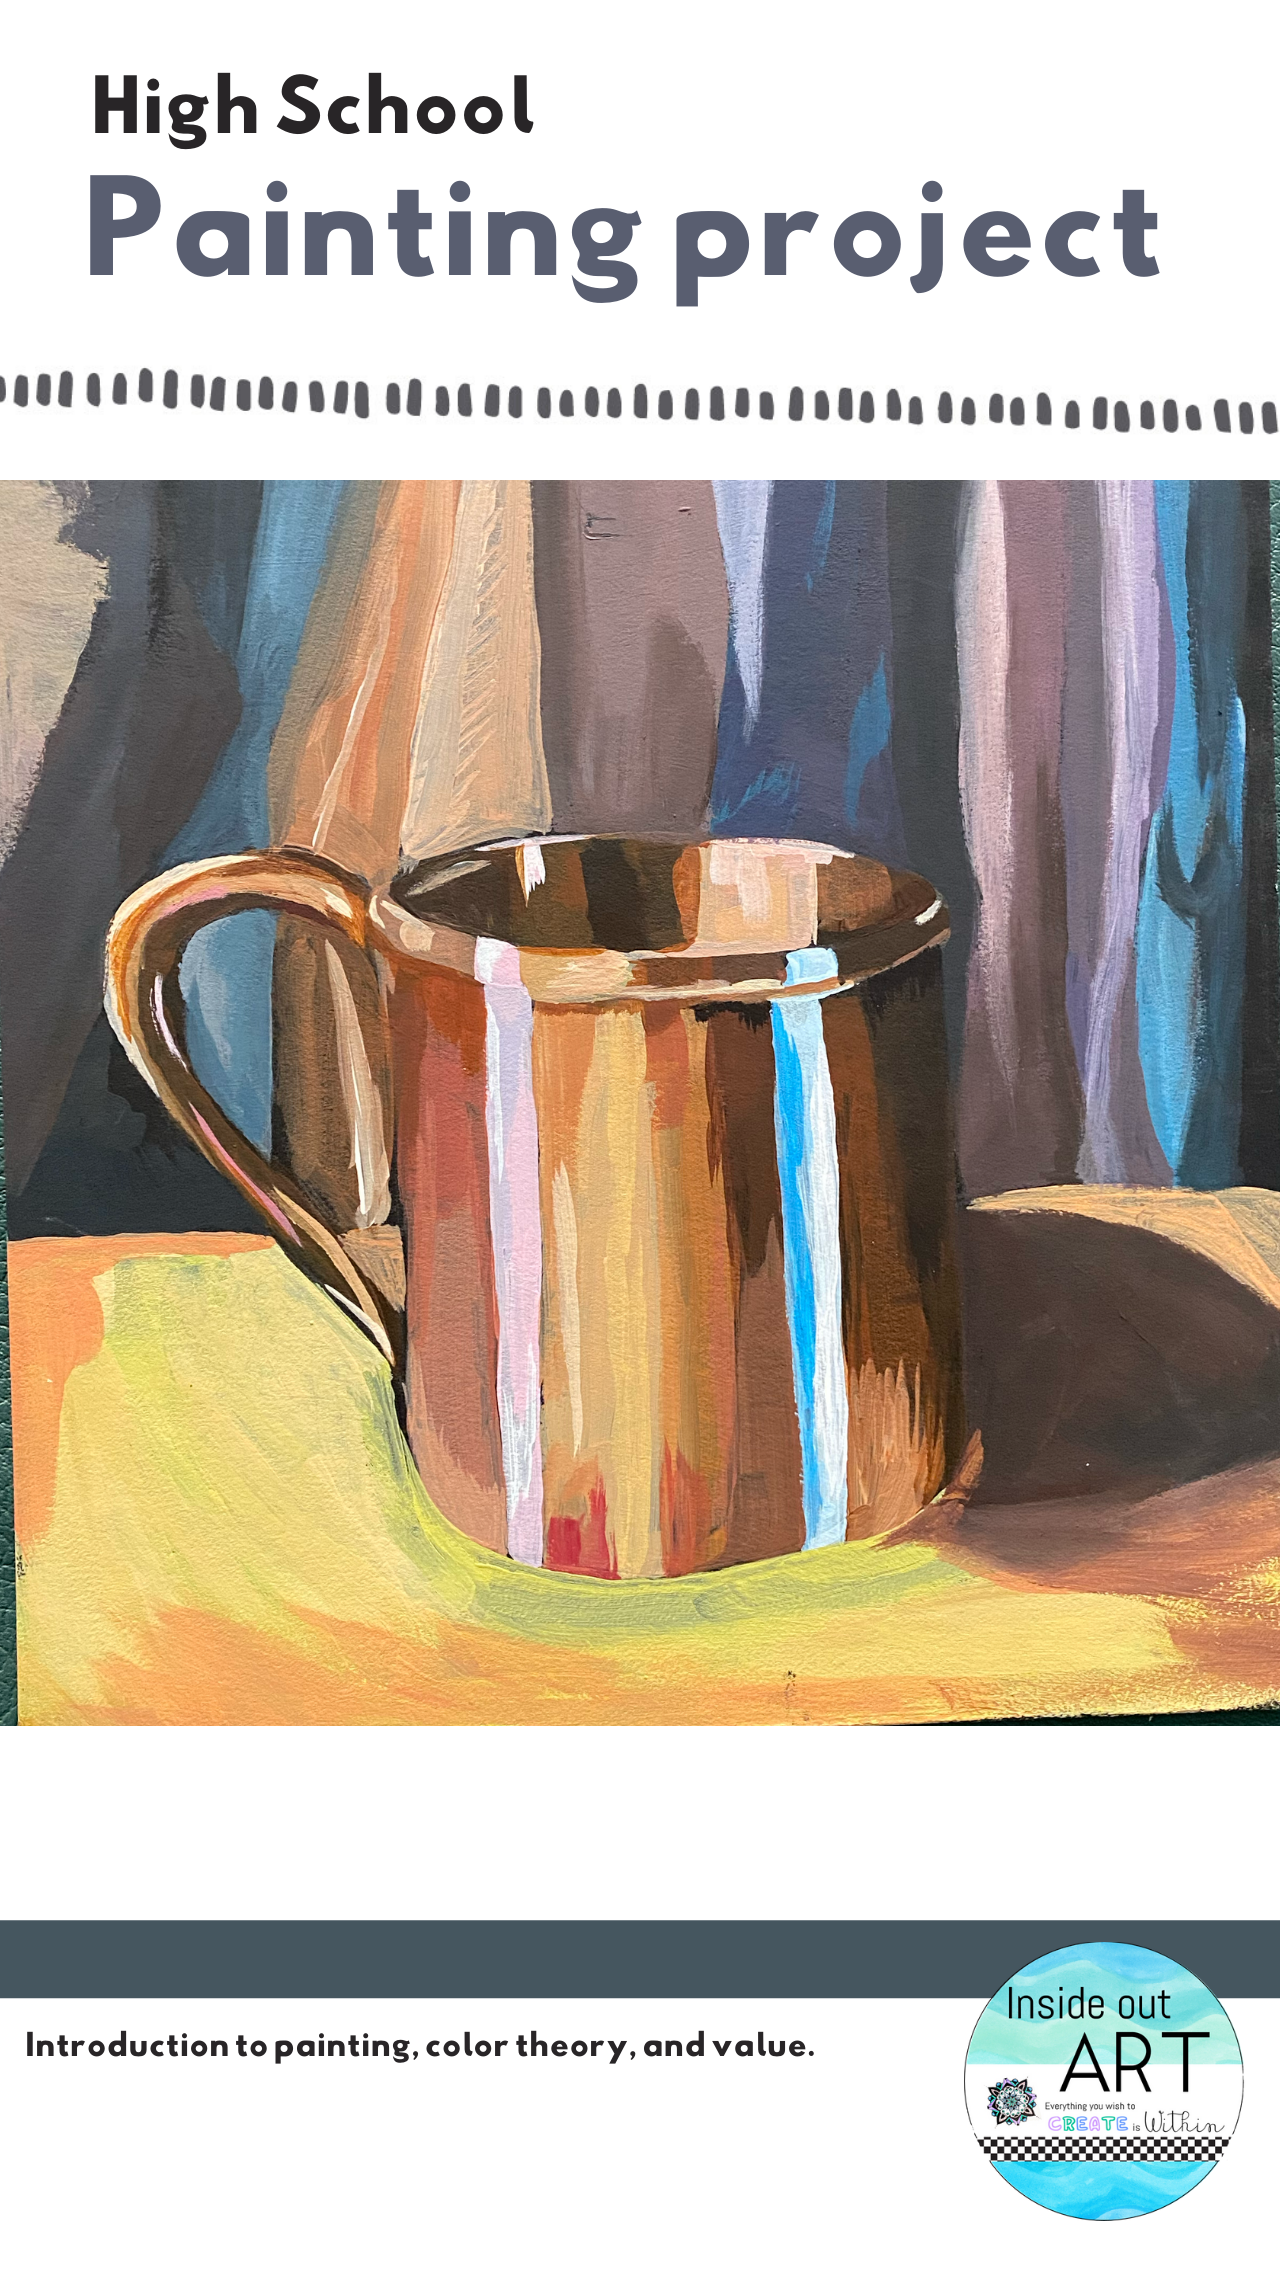 High School Painting Copper Mug In